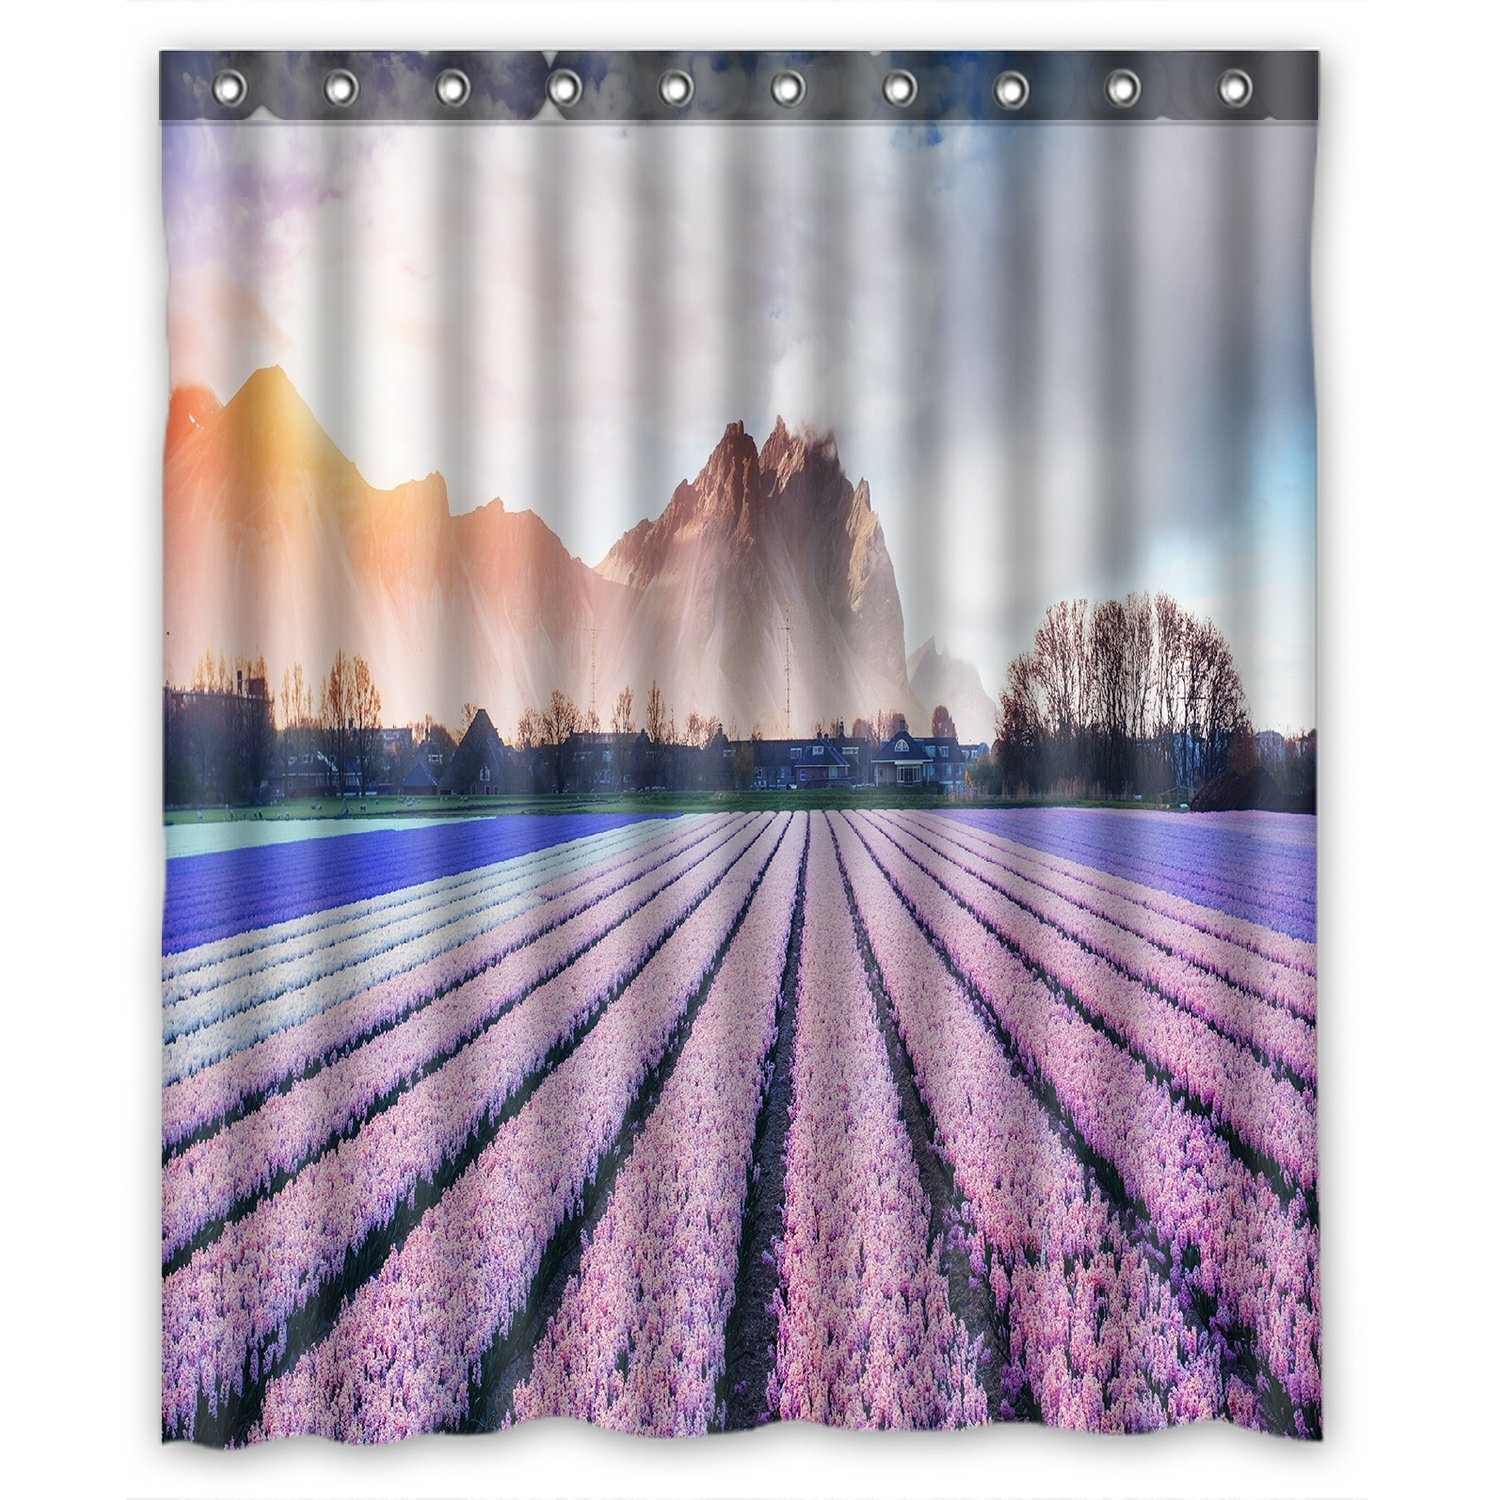 Landscape Scenery Nature Shower Curtain, Beautiful Mountains in the Mist at Sunset Shower Curtain 60x72 inch